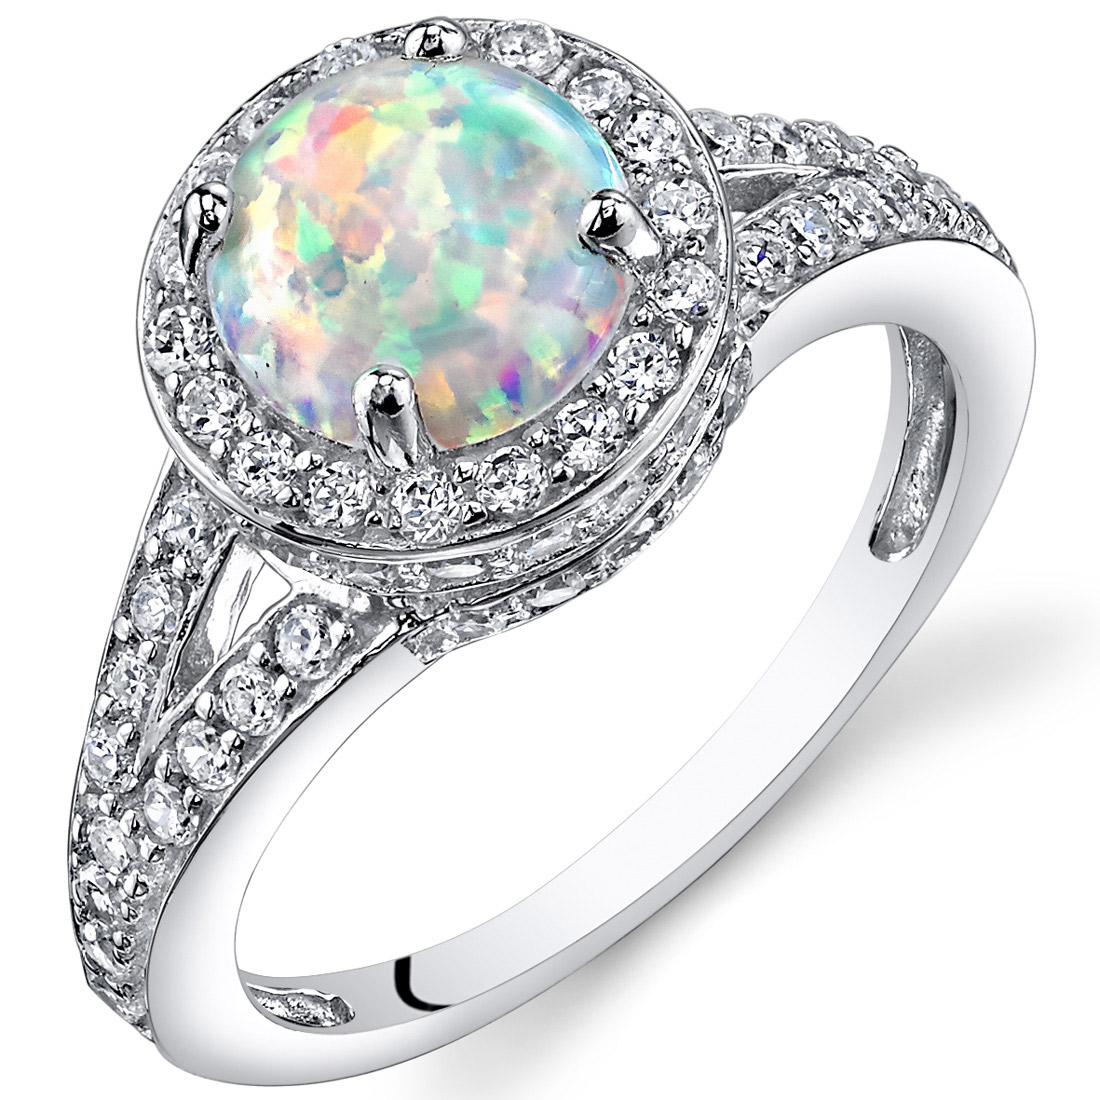 Created Opal Halo Ring Sterling Silver 1.25 Carats Sizes 5 t